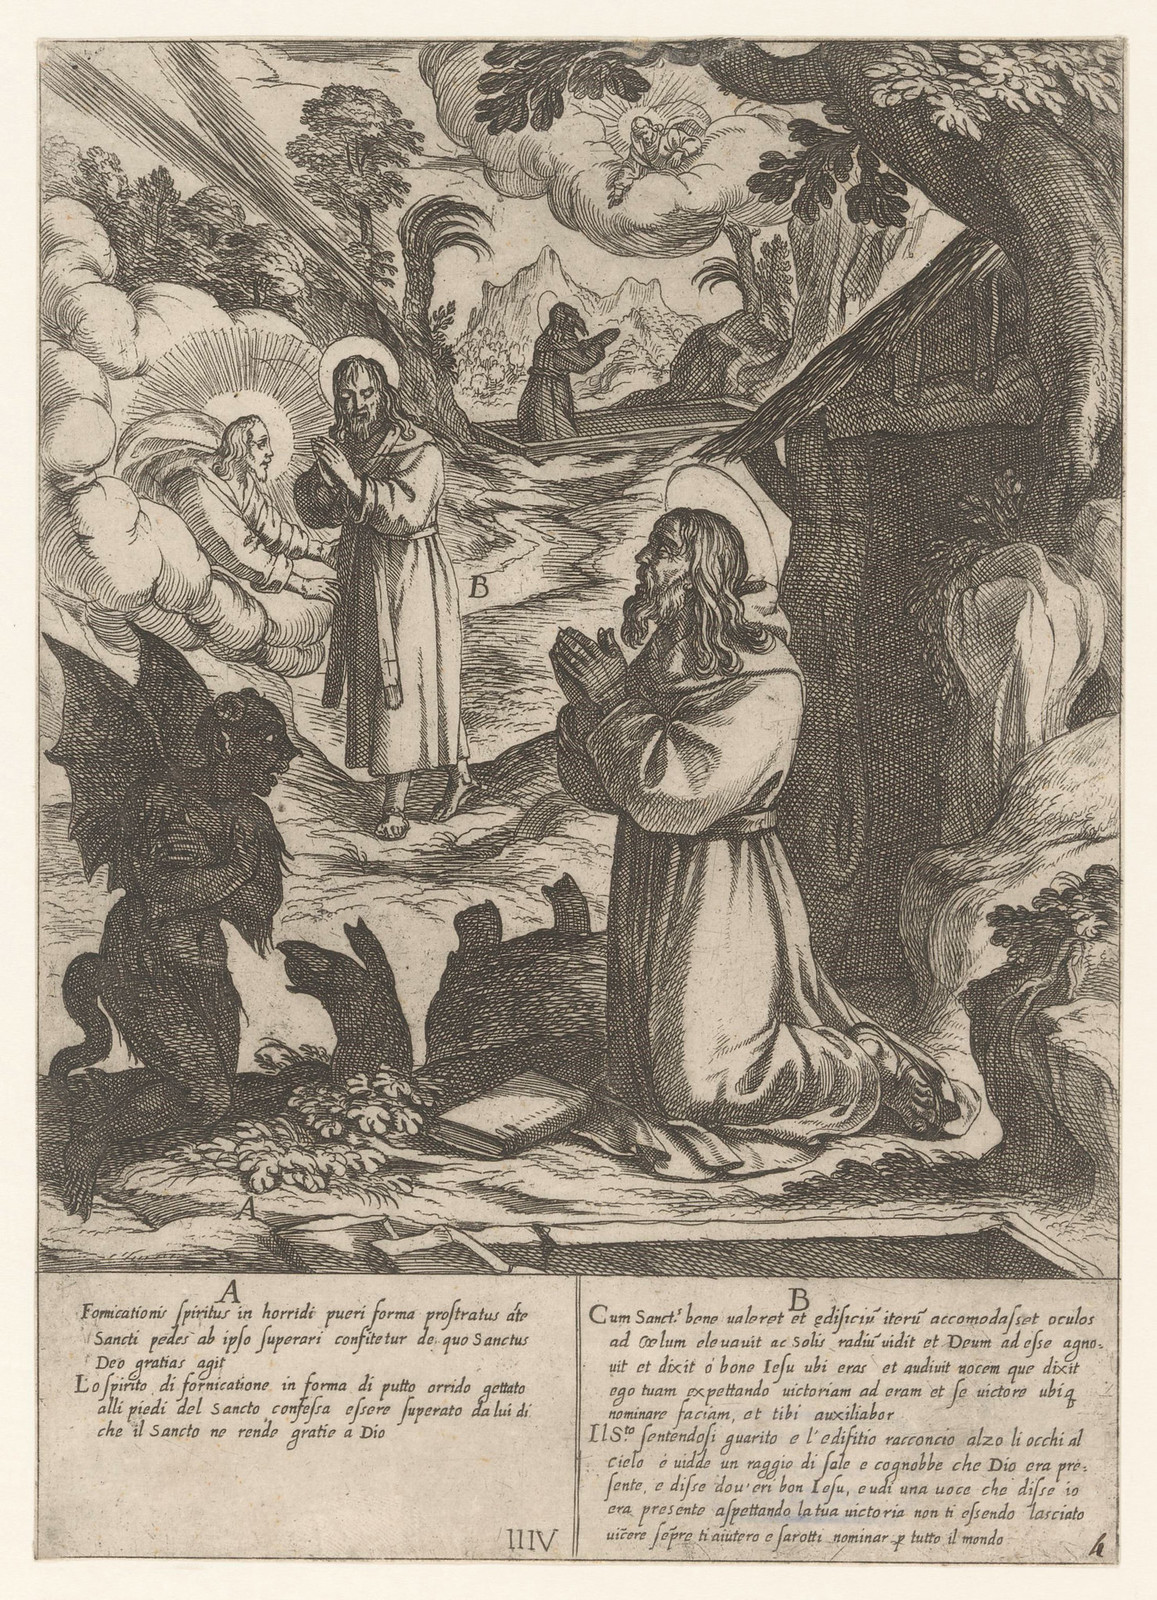 Antonio Tempesta, after Niccolo Circignani and Giovanni Battista Lombardelli - Saint Anthony With Demons - 06, 1598